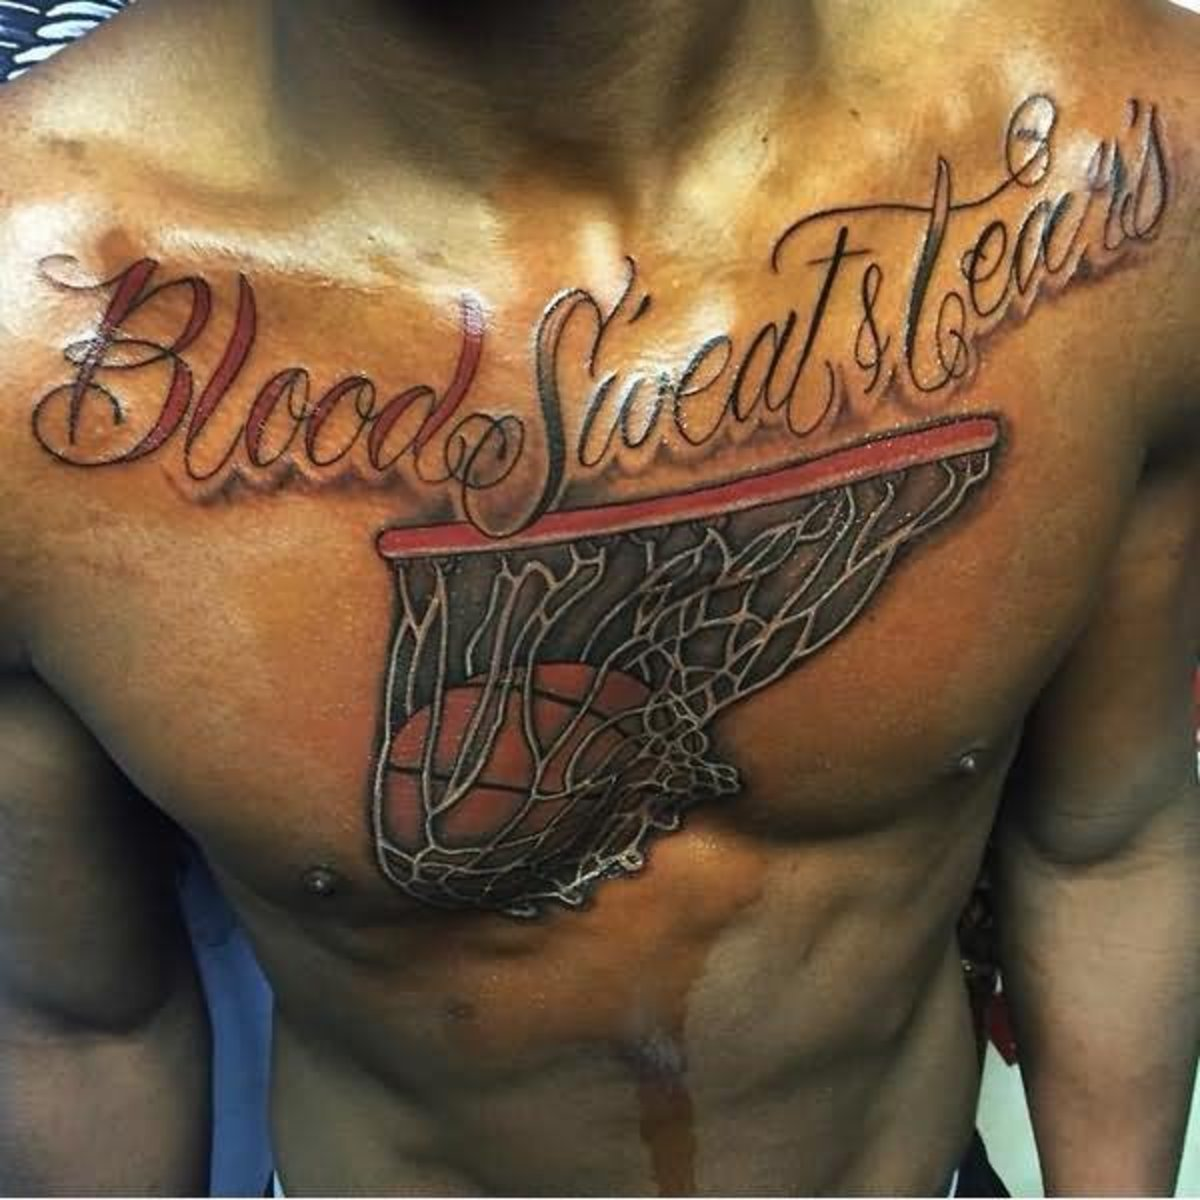 Blood-Sweat-Tears-Basketball-In-Basket-Tattoo-On-Chest